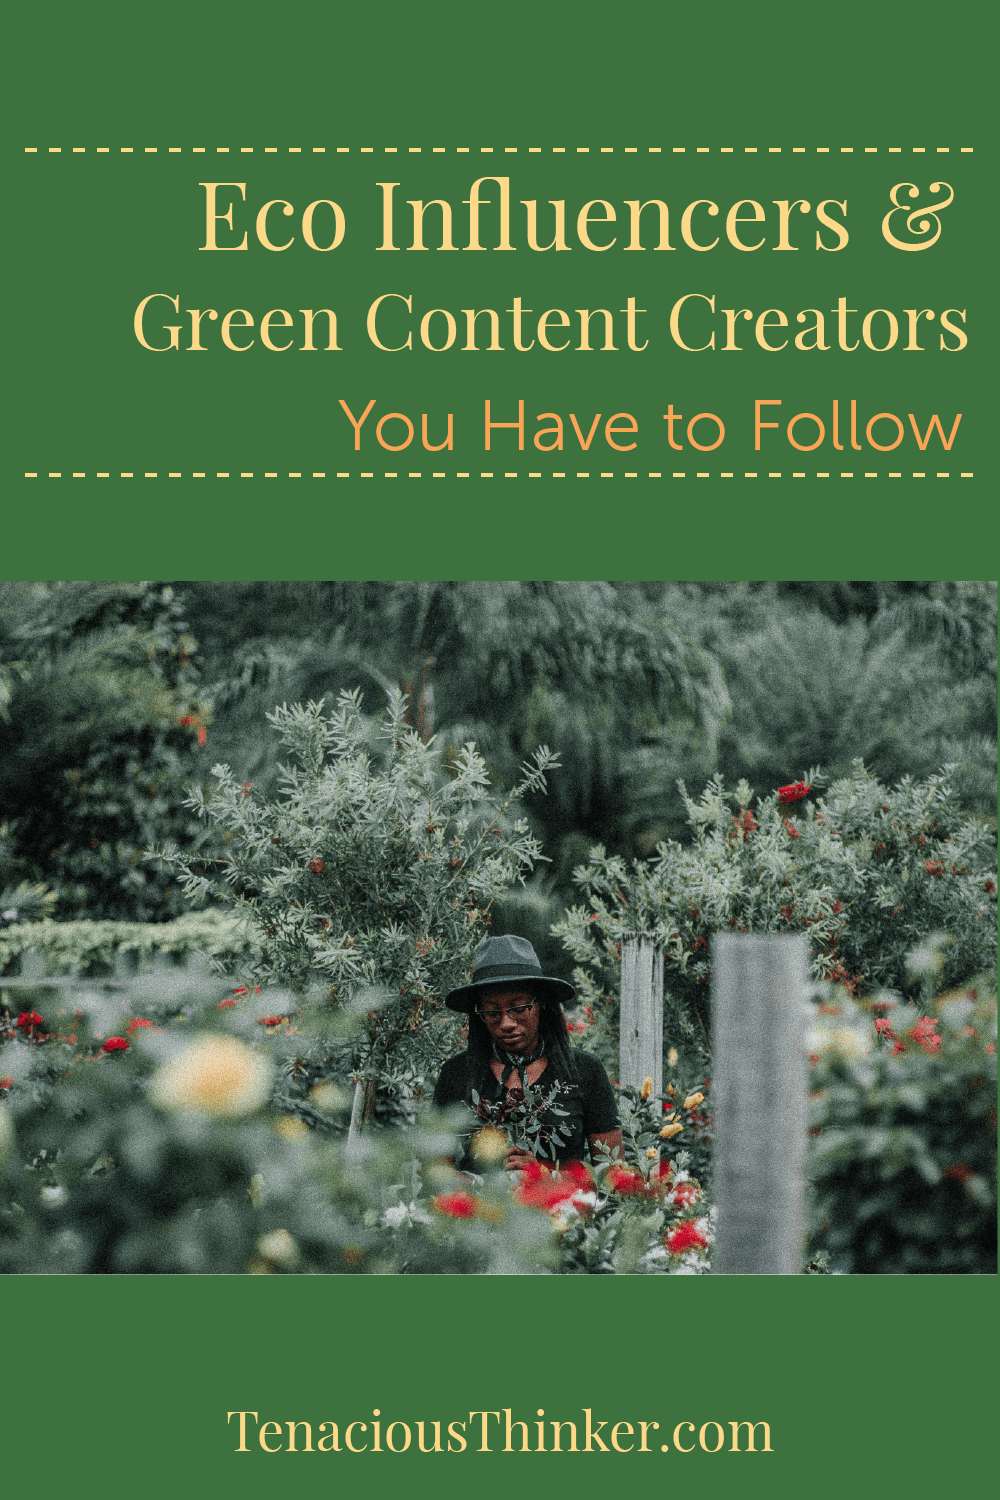 Eco Influencers and Green Content Creators You Have to Follow by Tenacious Thinker.com Image of a woman in a garden